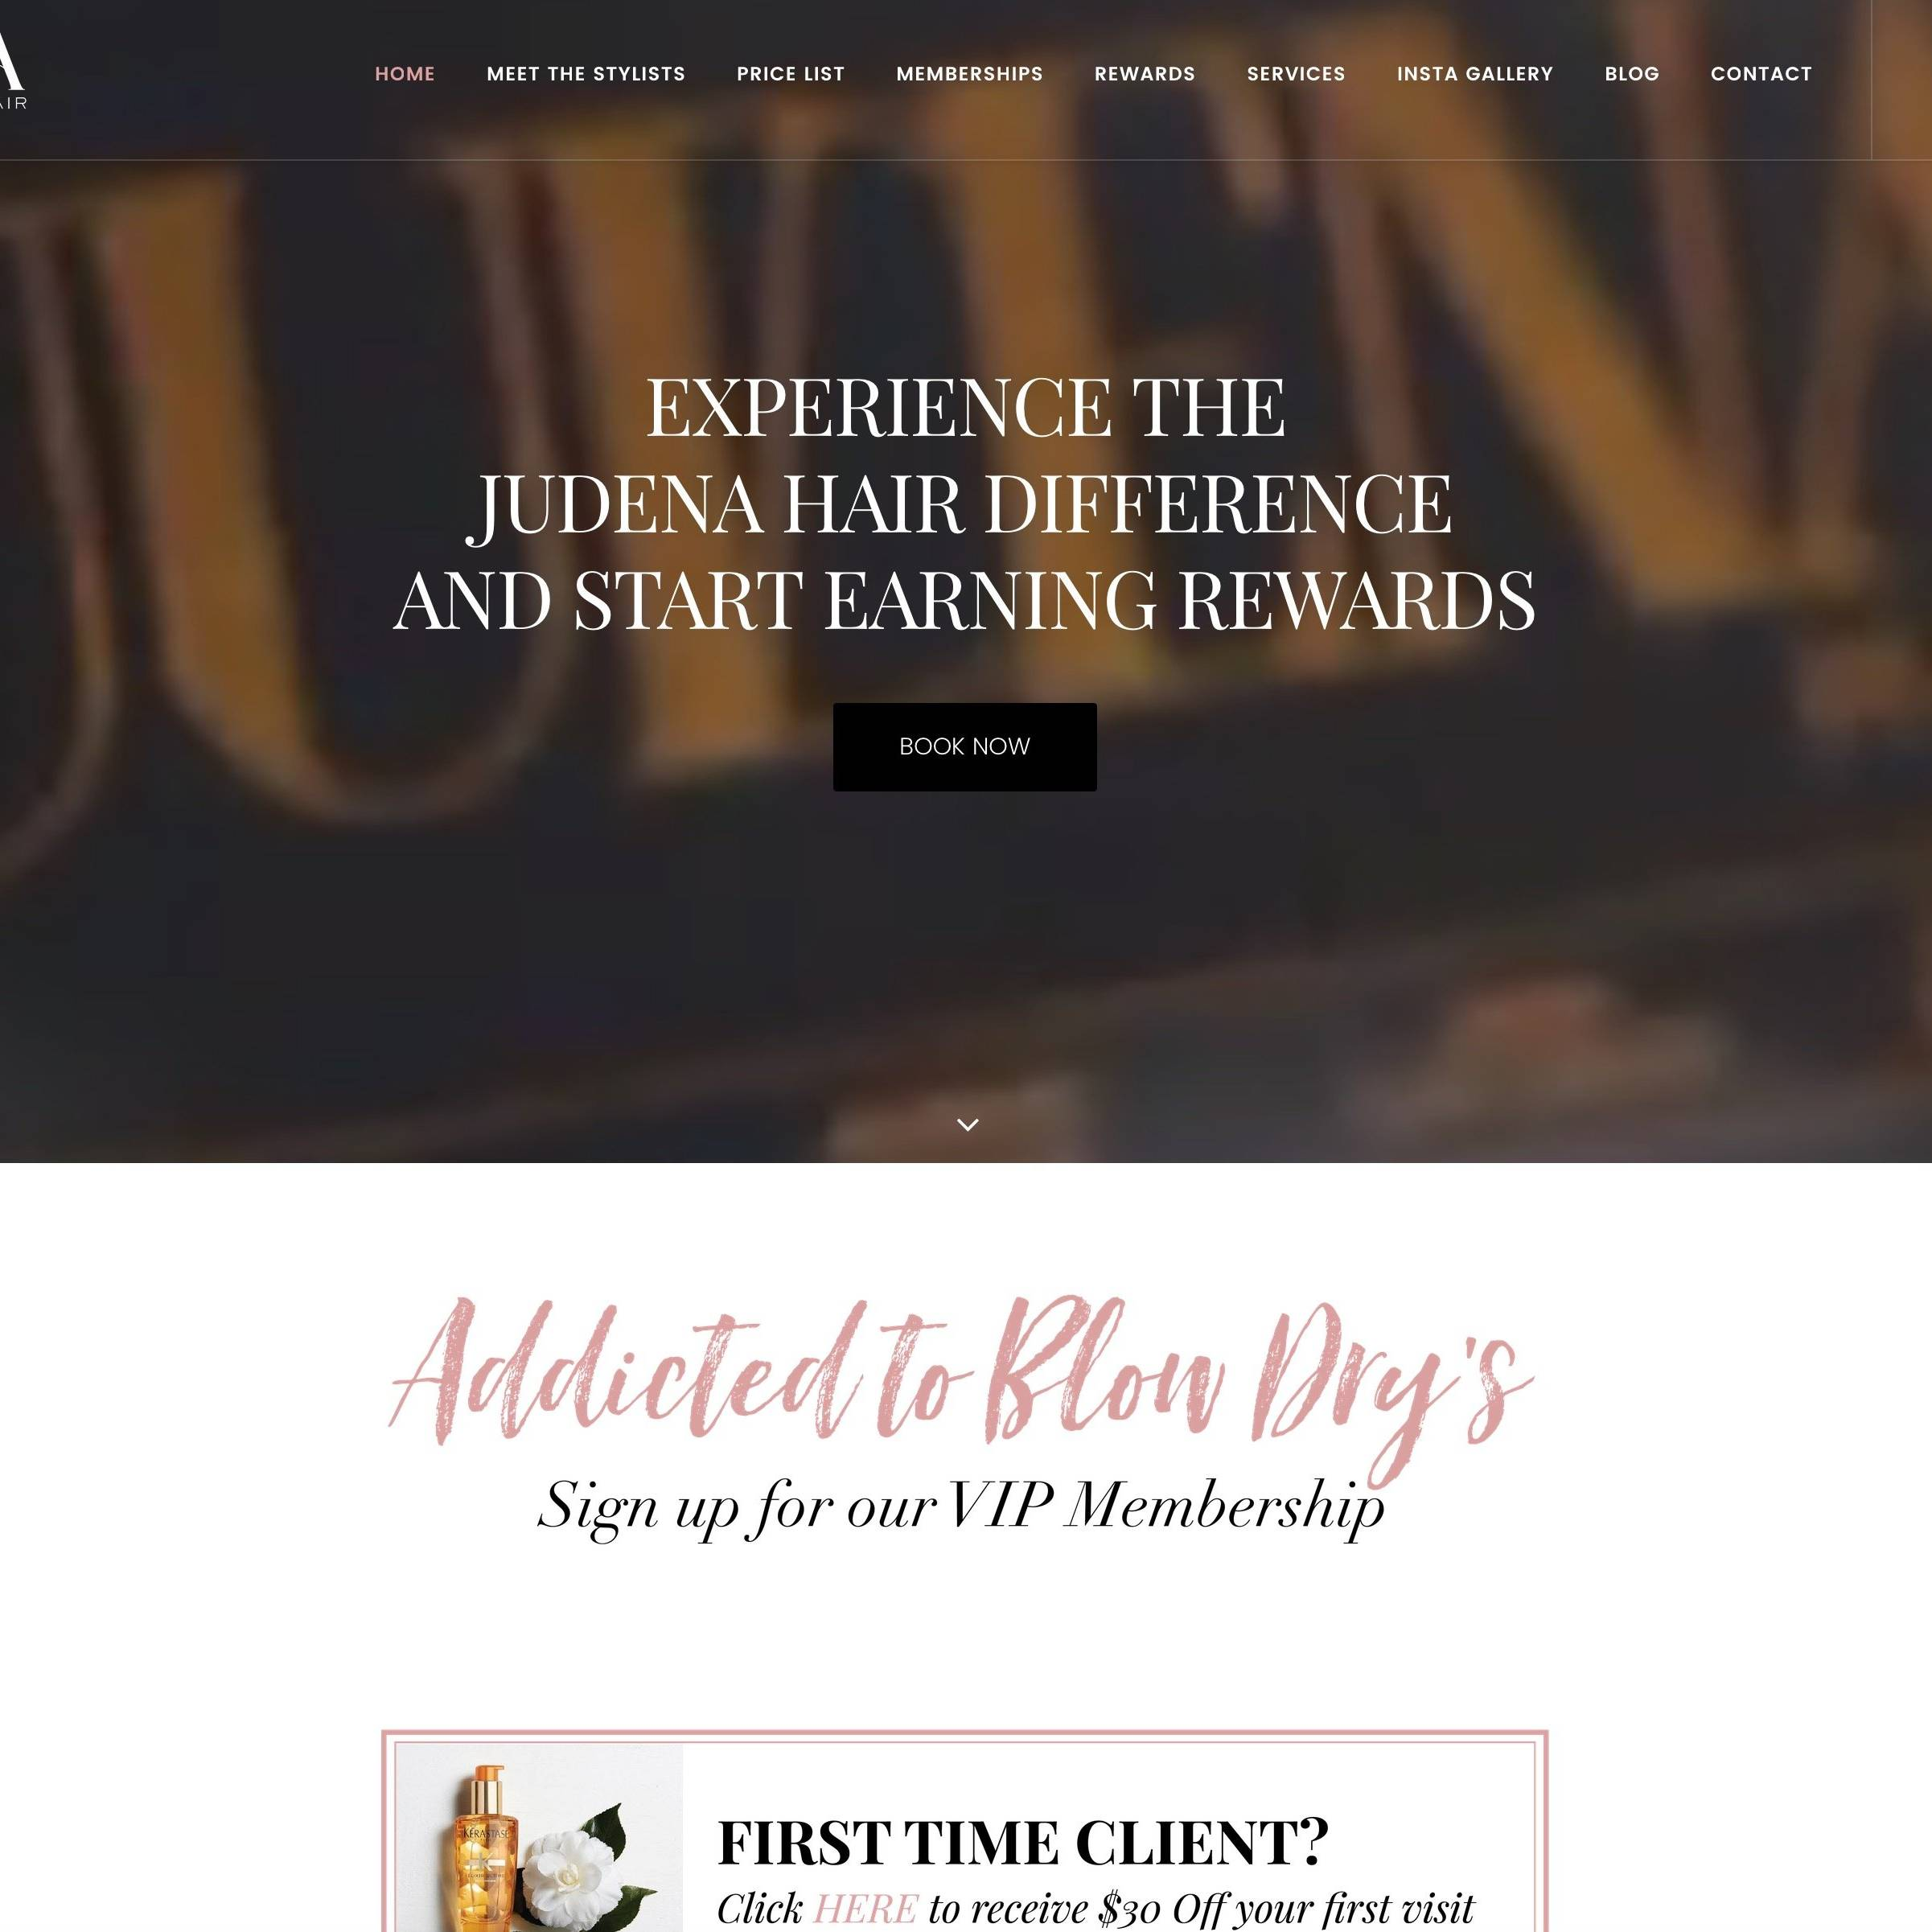 Judena Hair Site By The Creative Solutionist